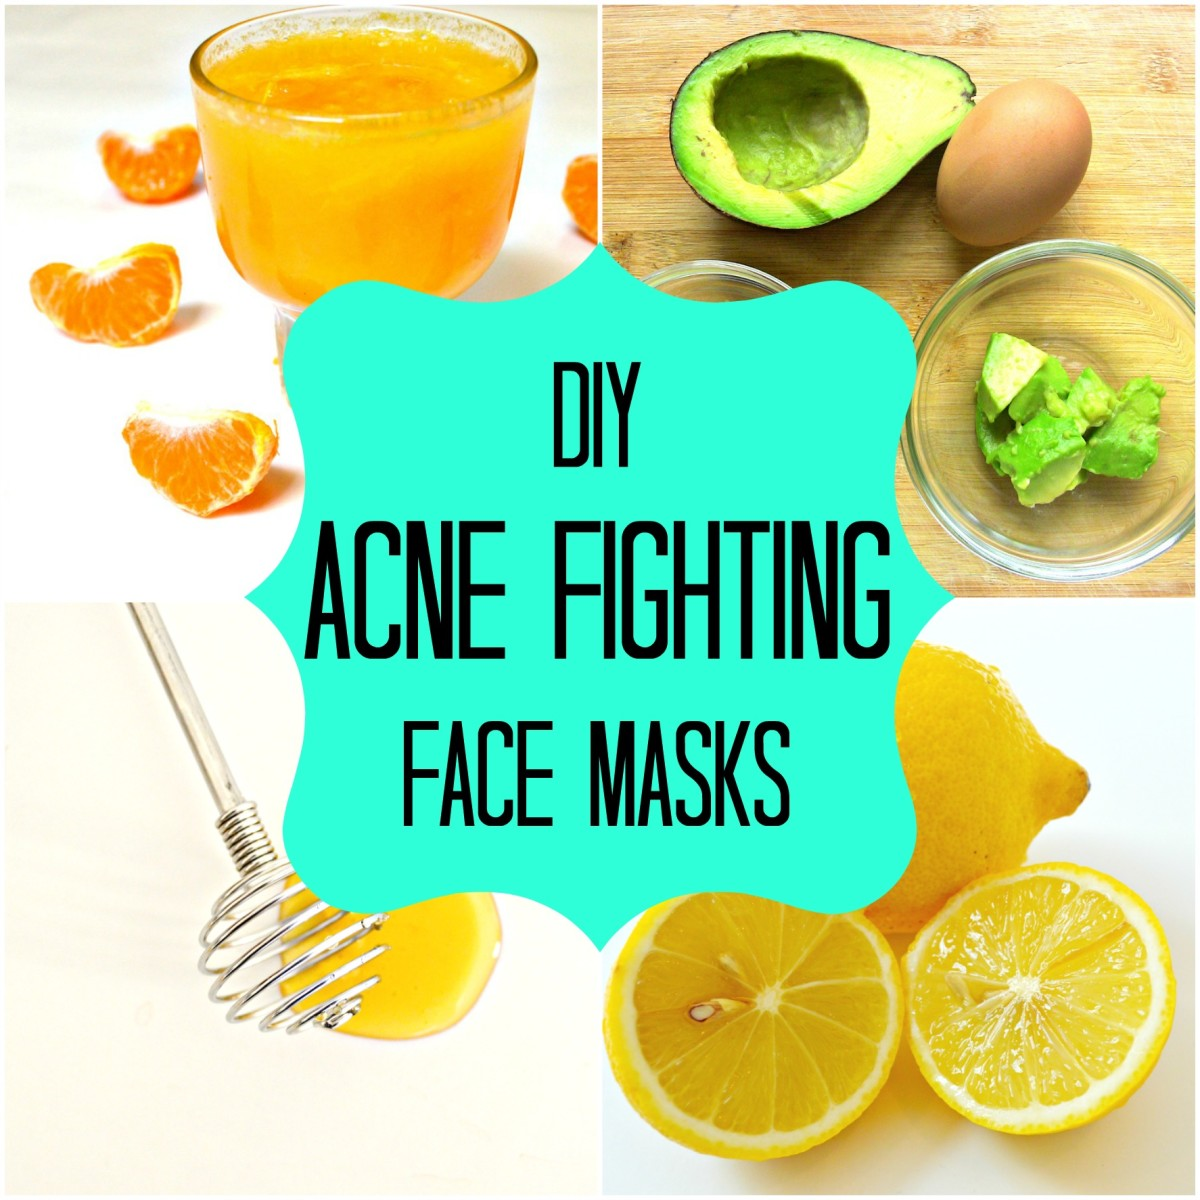 Try out these three face mask recipes at home to fight blemishes, large pores and difficult skin.